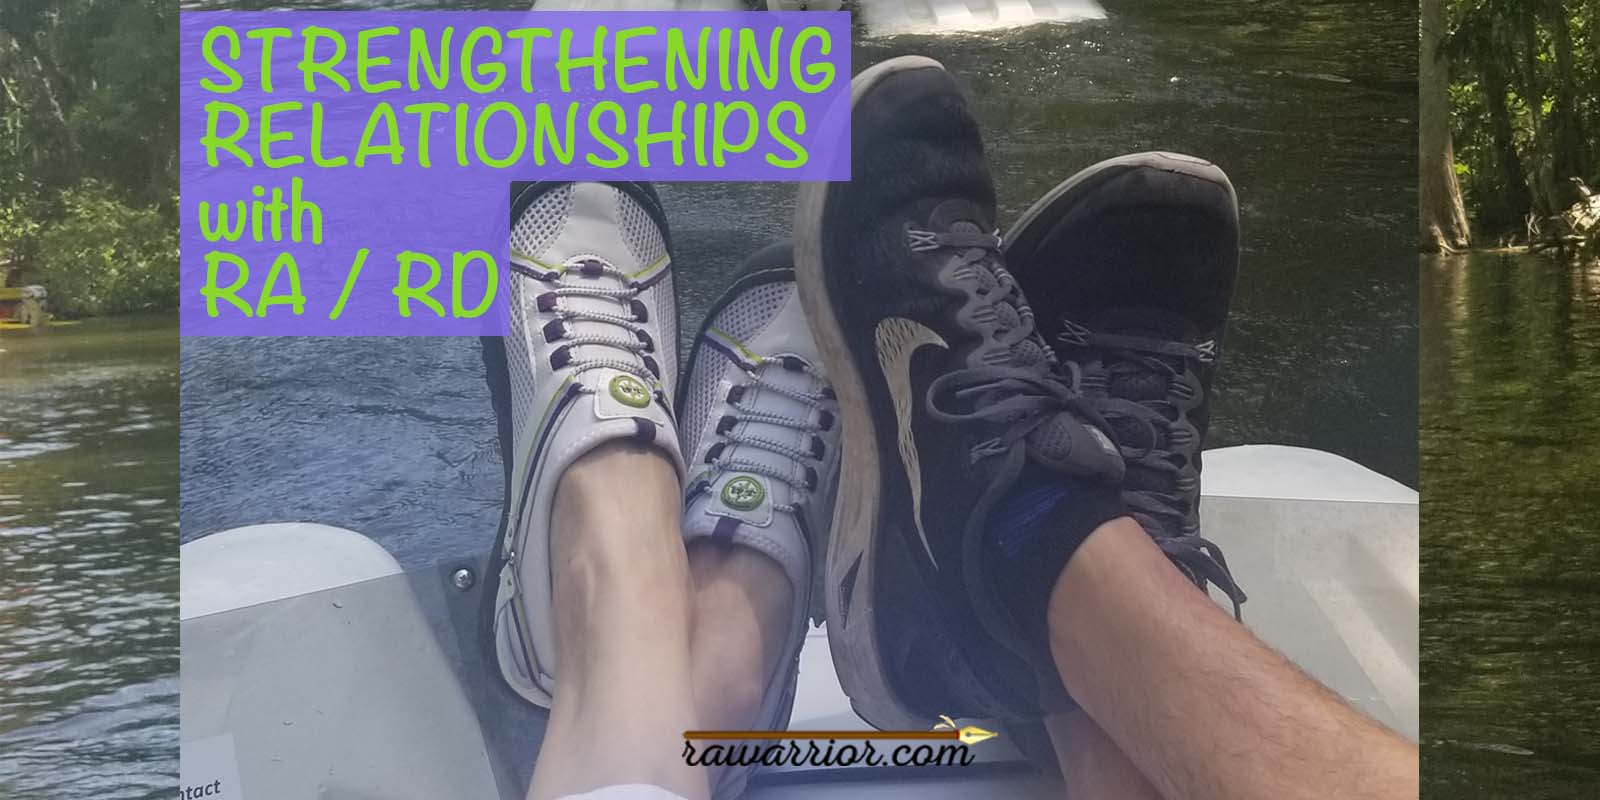 Ways to Strengthen Relationships with RA